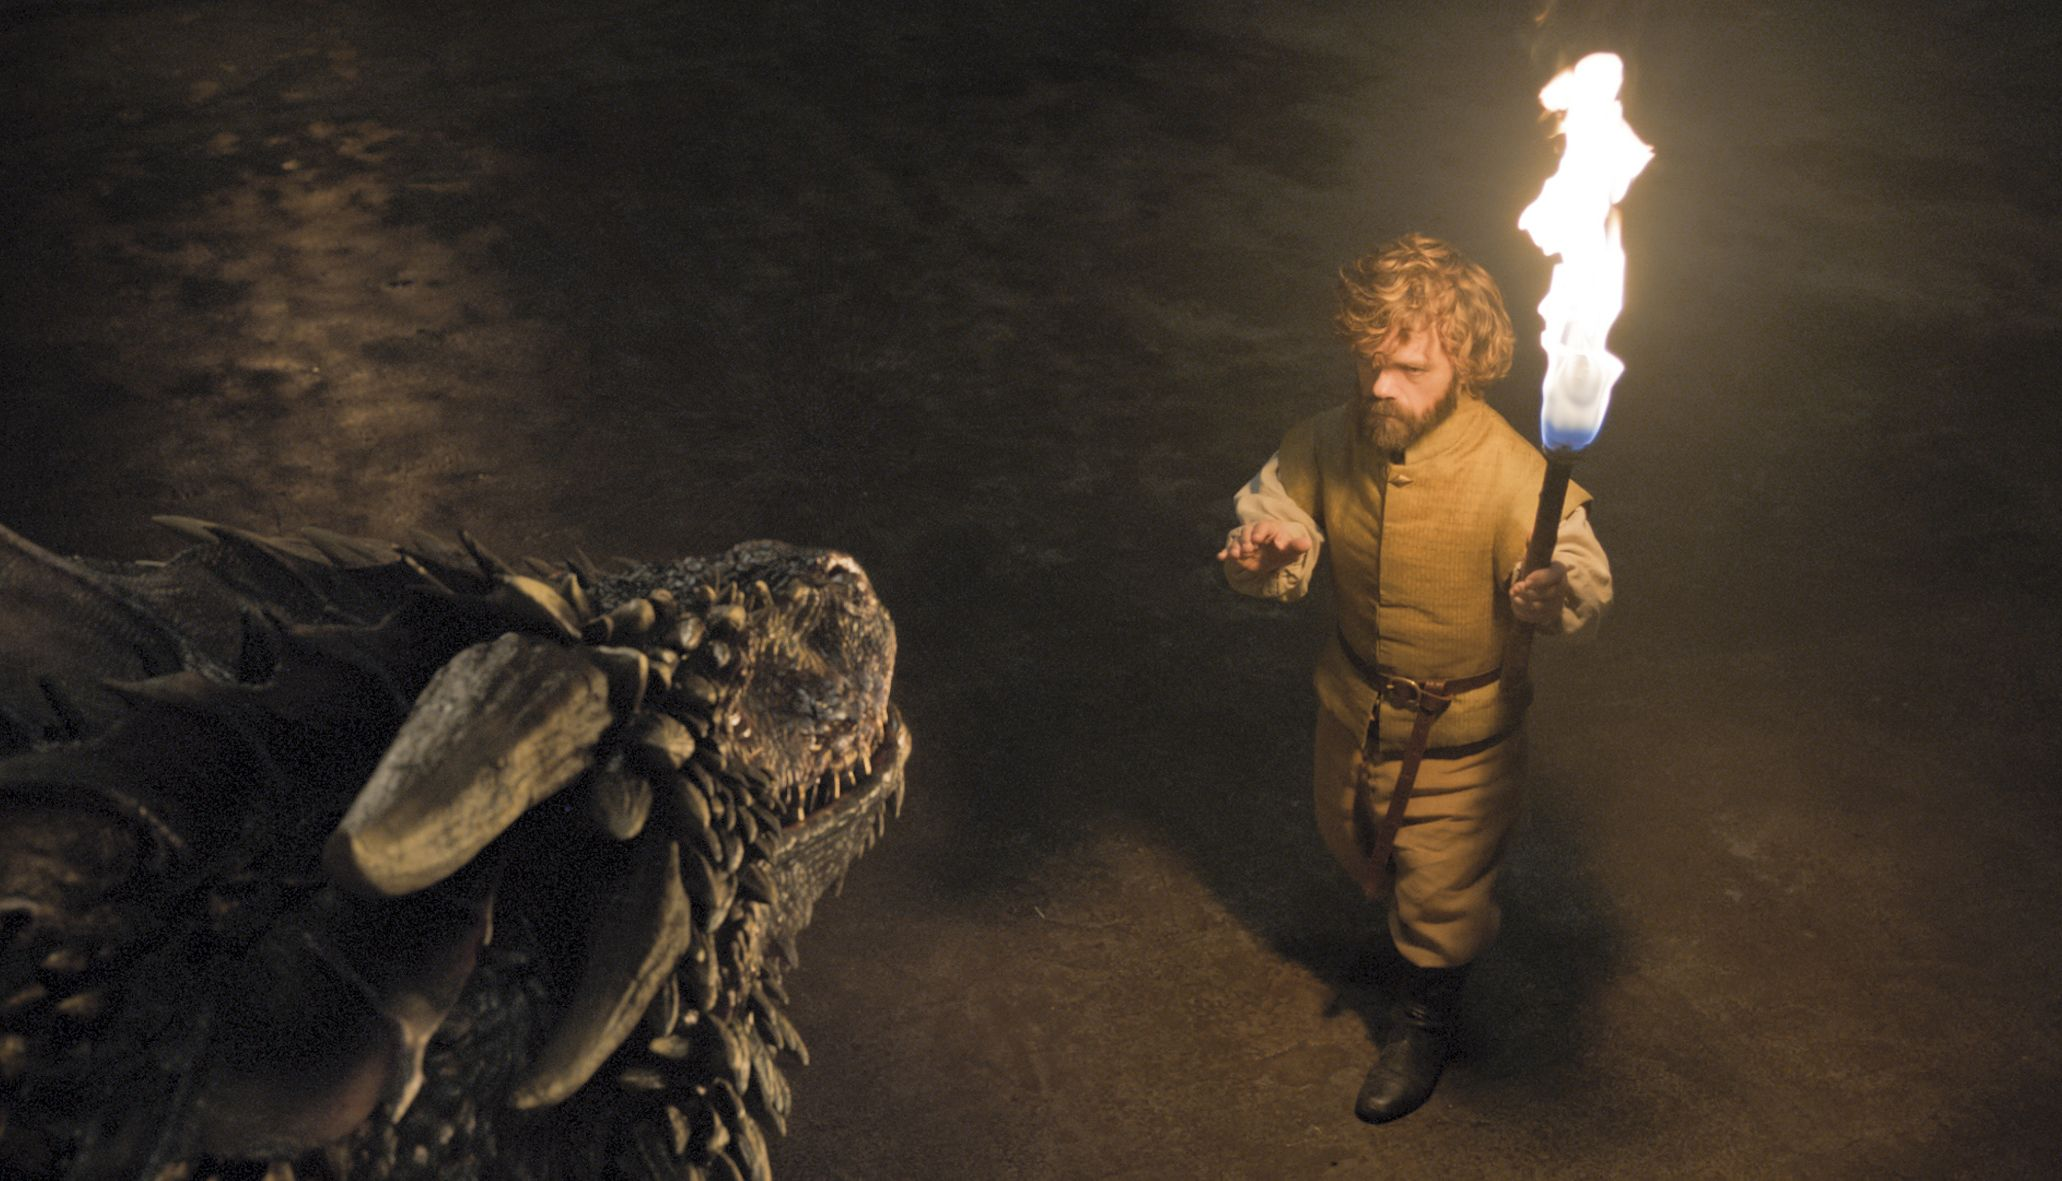 7-things-you-might-have-missed-in-game-of-thrones-season-6-episode-2-959344.jpg